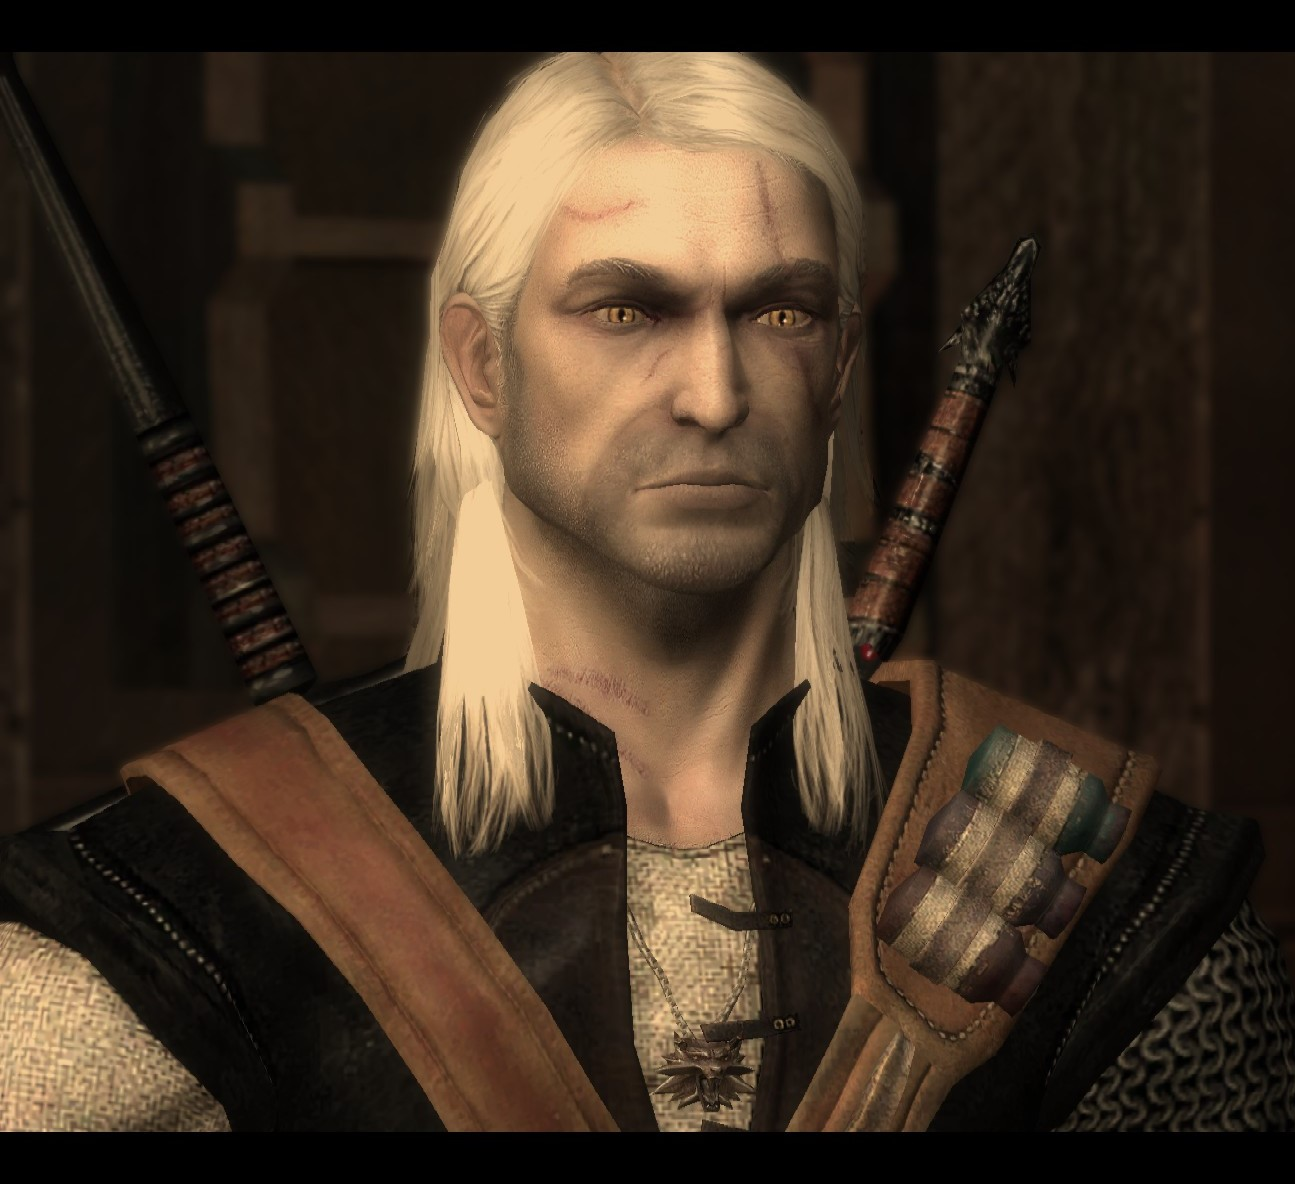 Geralt S Witcher 1 Hairstyle To Replace Long And Loose With Hair Works Compatible Request The Witcher 3 Mod Talk The Nexus Forums